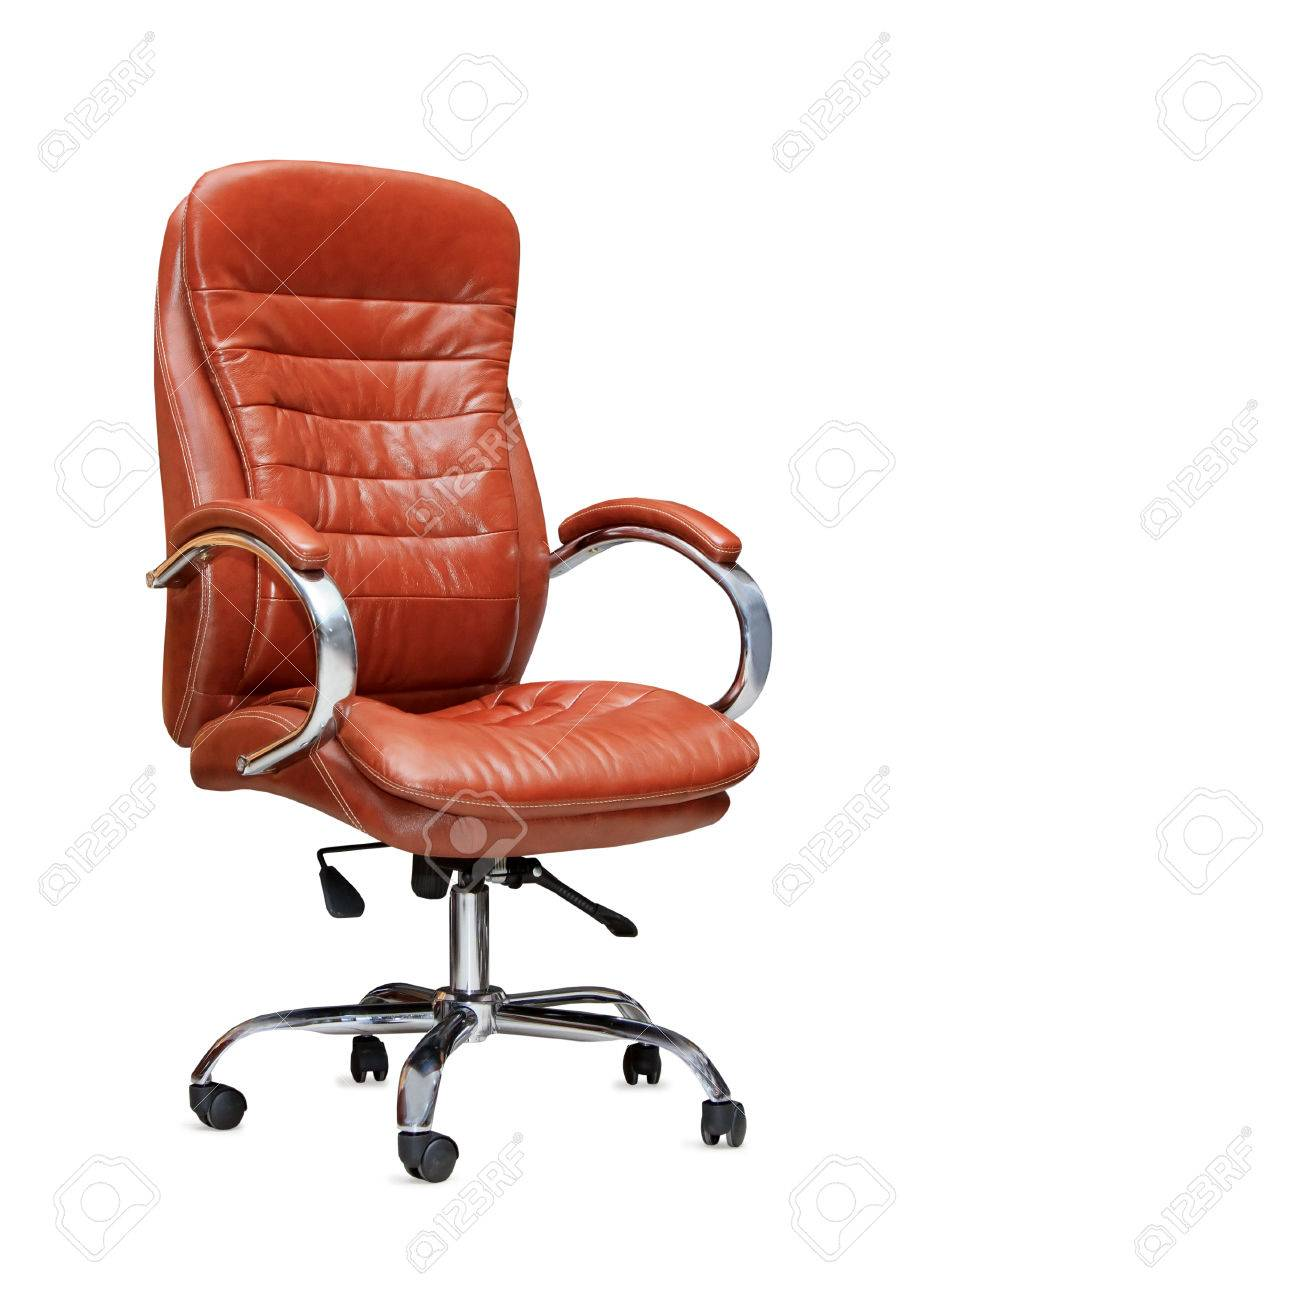 Picture of: The Office Chair From Orange Leather Isolated Stock Photo Picture And Royalty Free Image Image 24401111